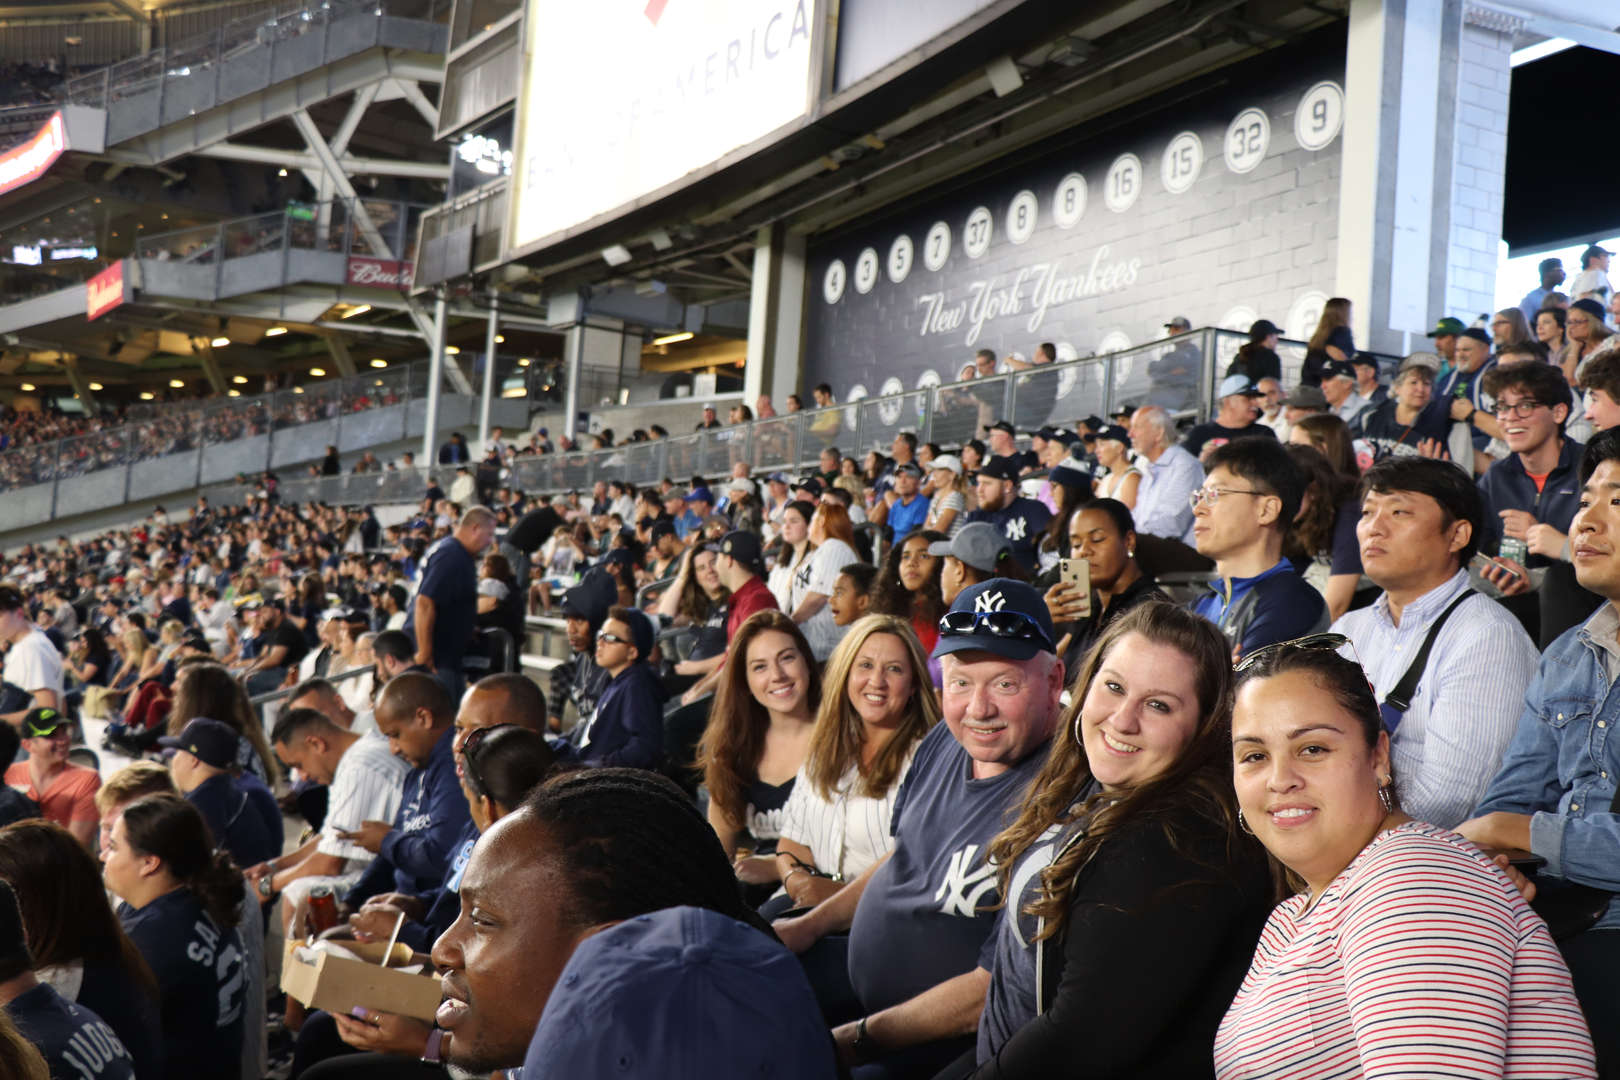 PS 152 Staff at the Yankee game.